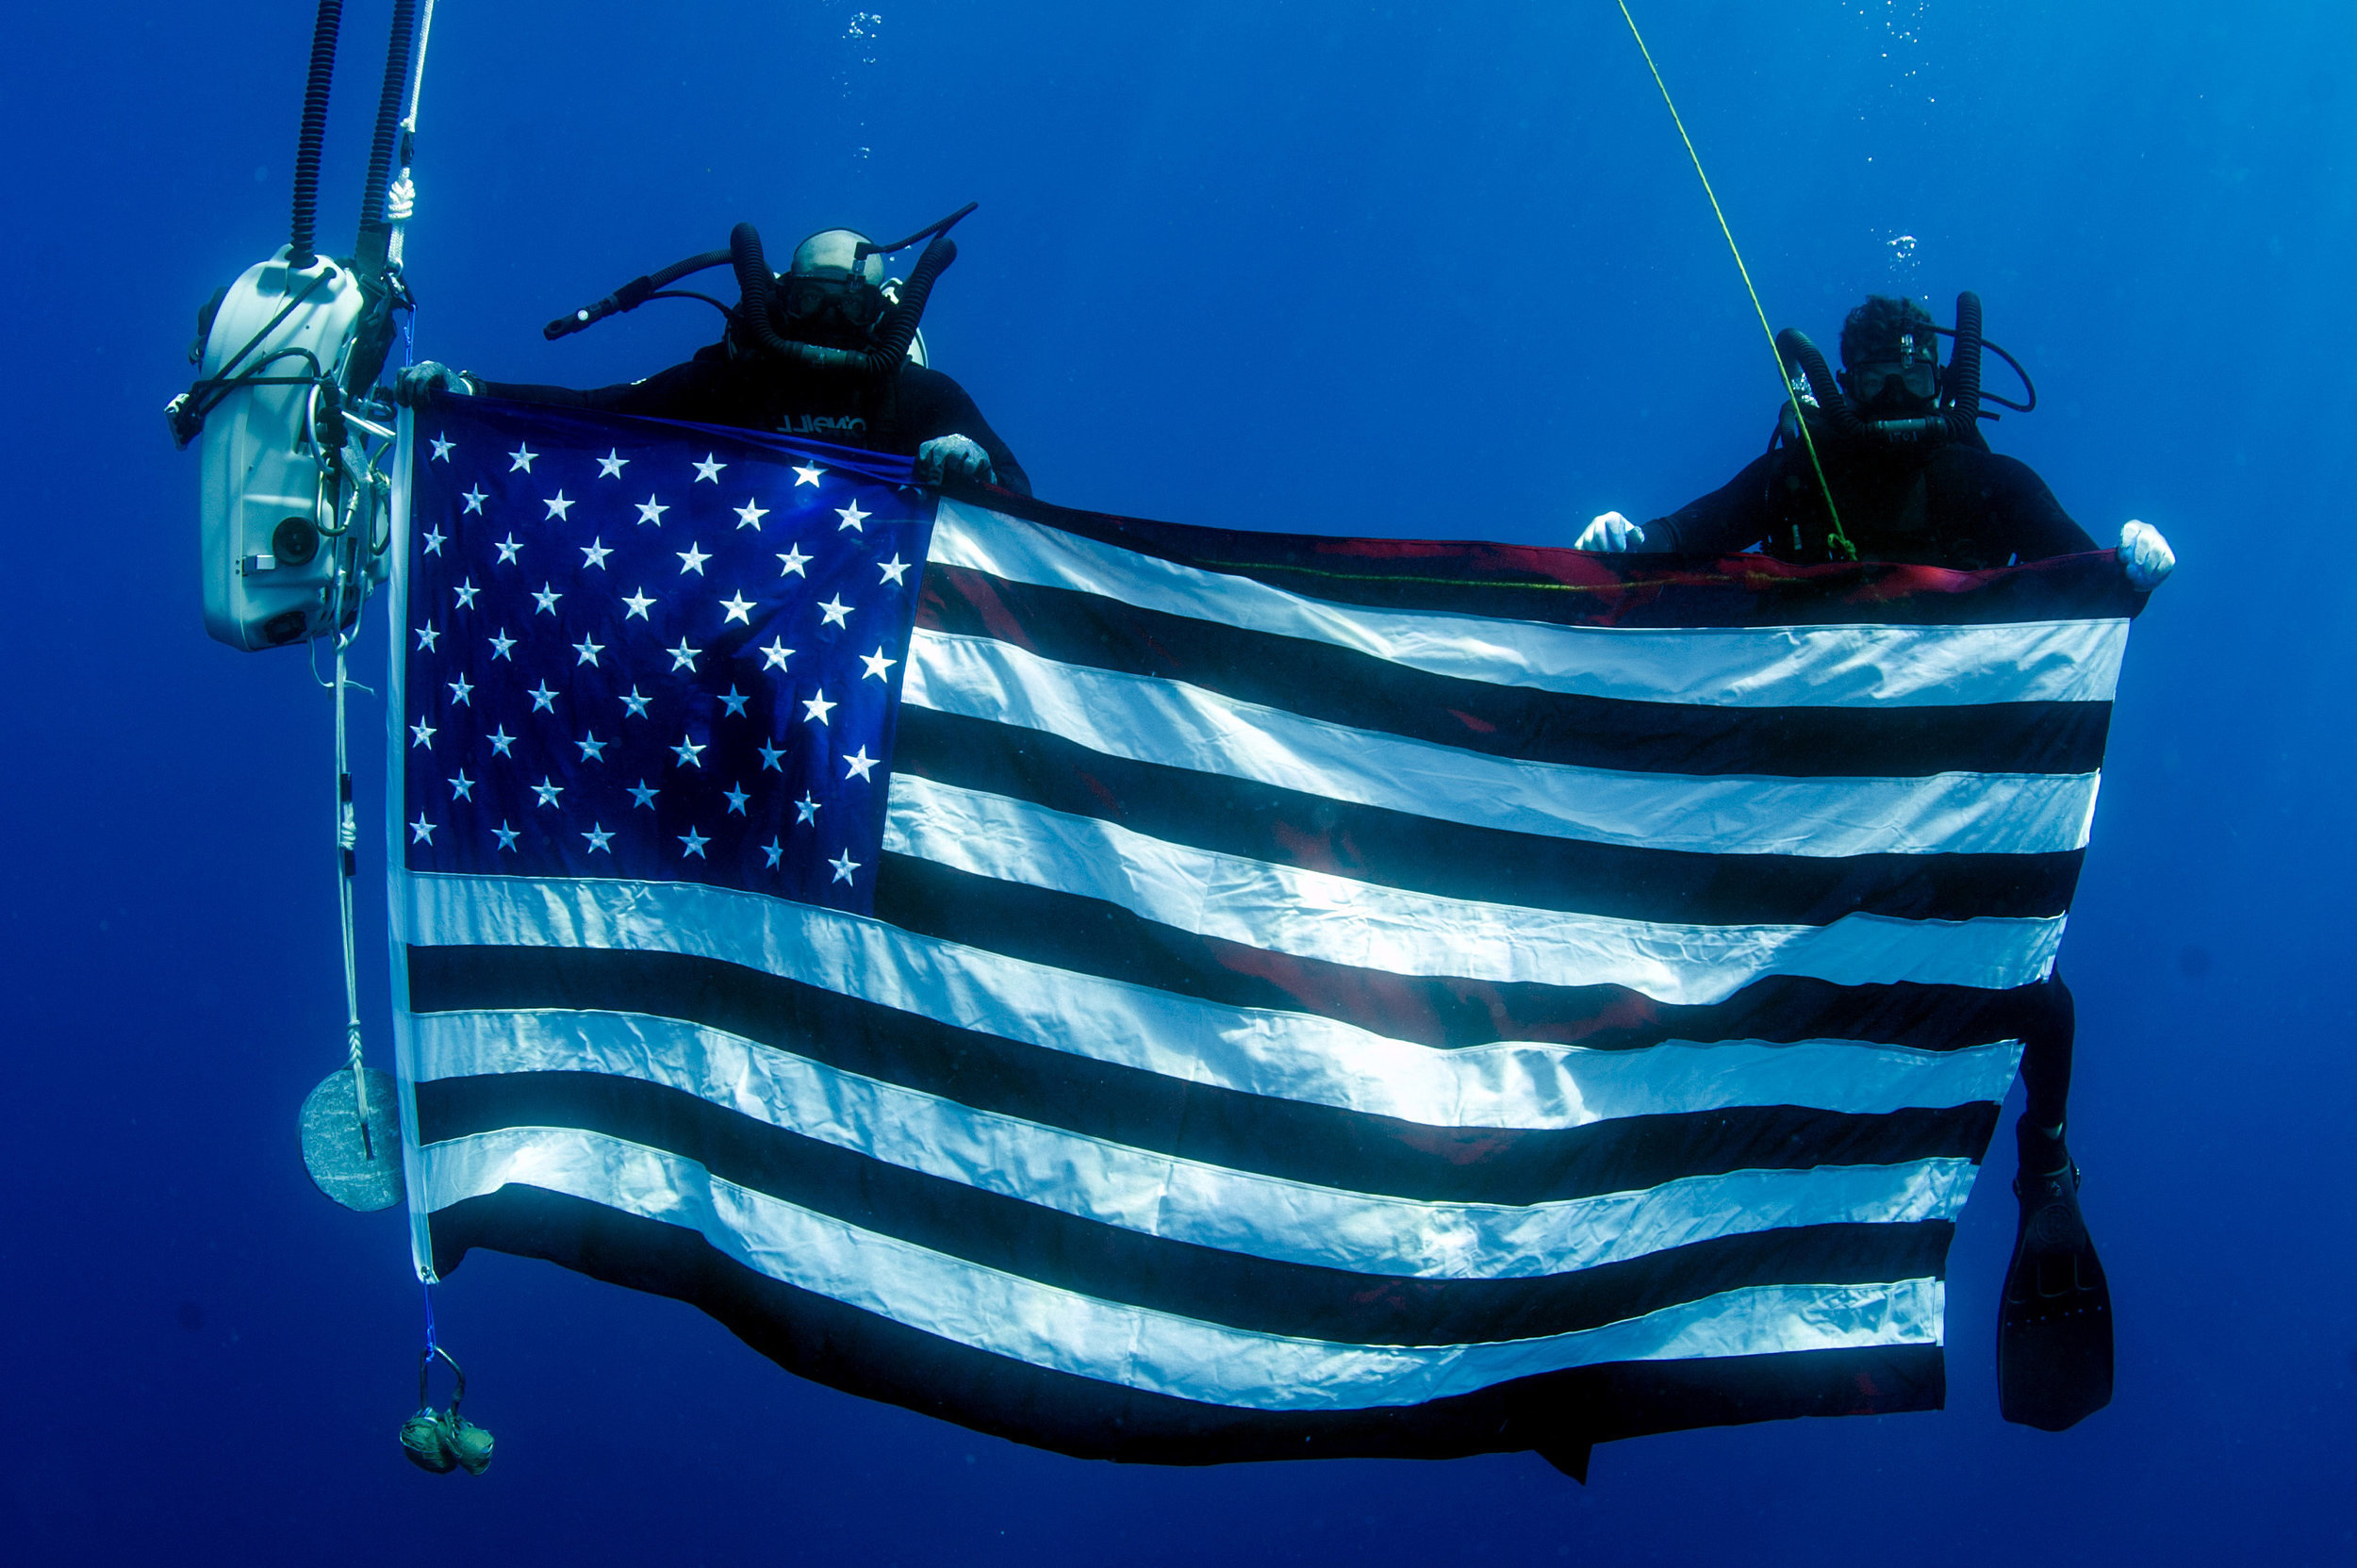 2 divers holding an American flag under water